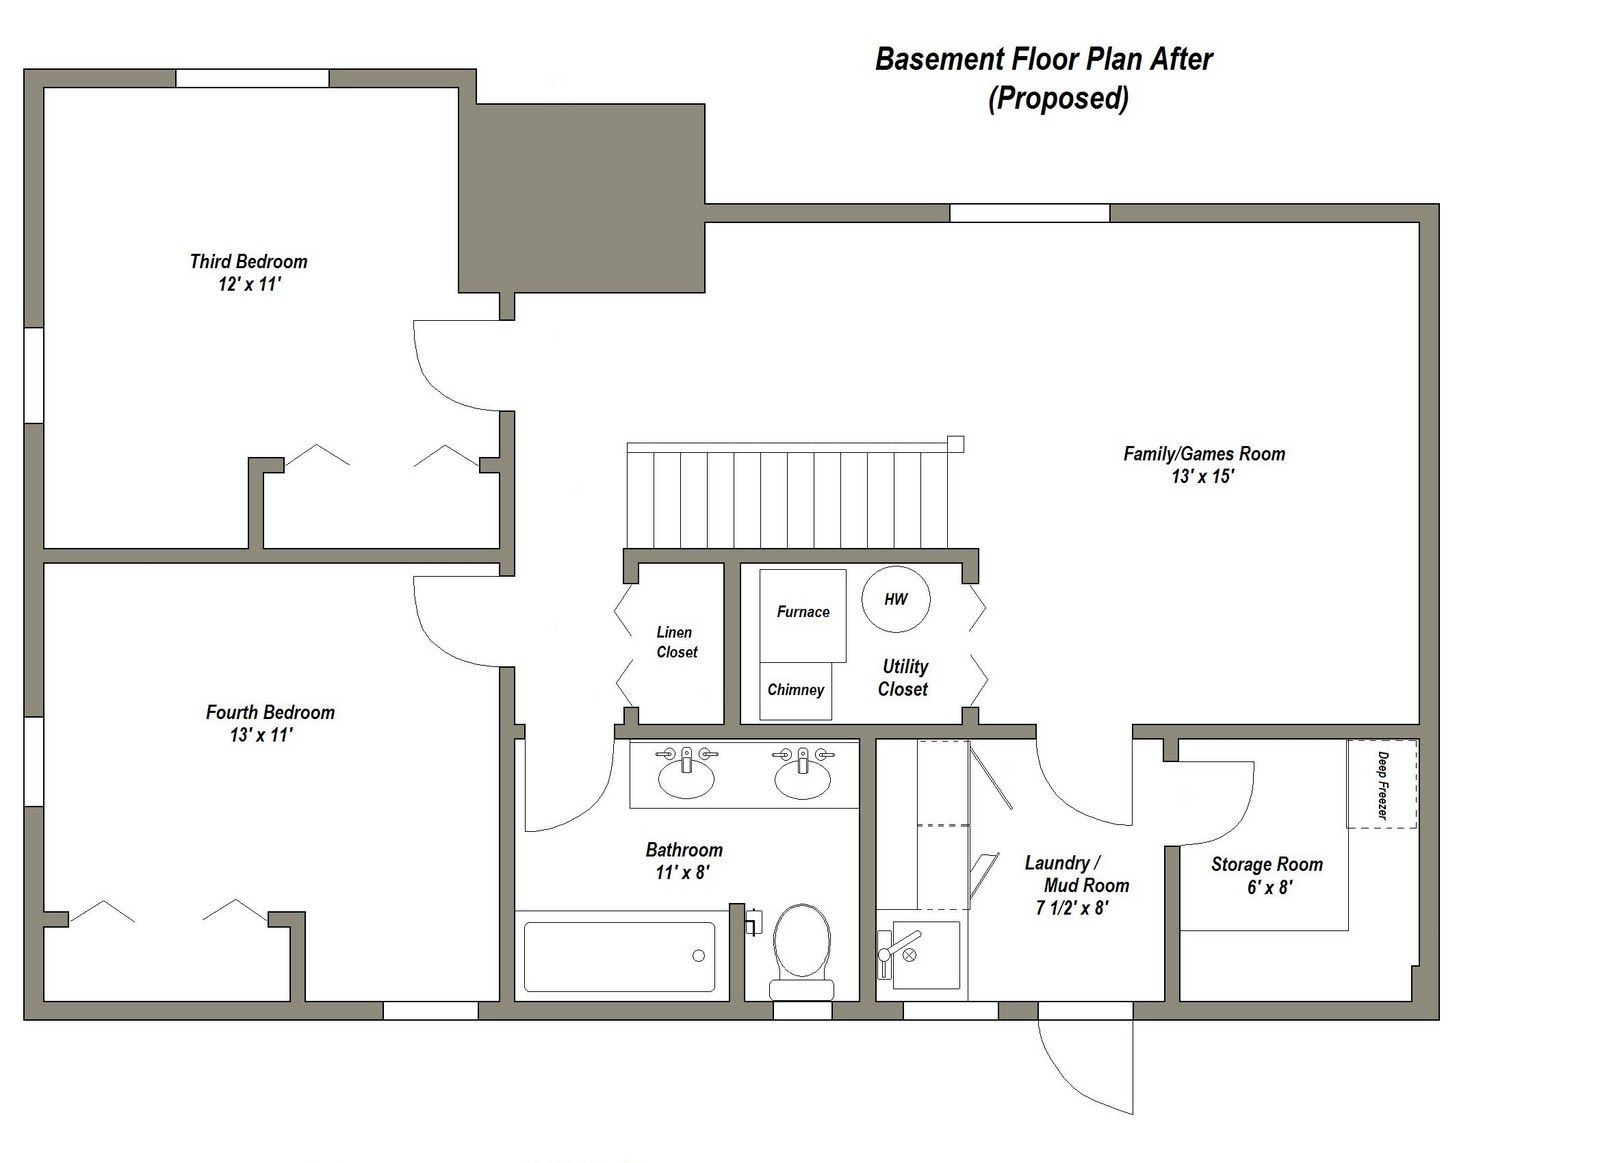 pin by krystle rupert on basement pinterest basement basement floor plans and basement flooring